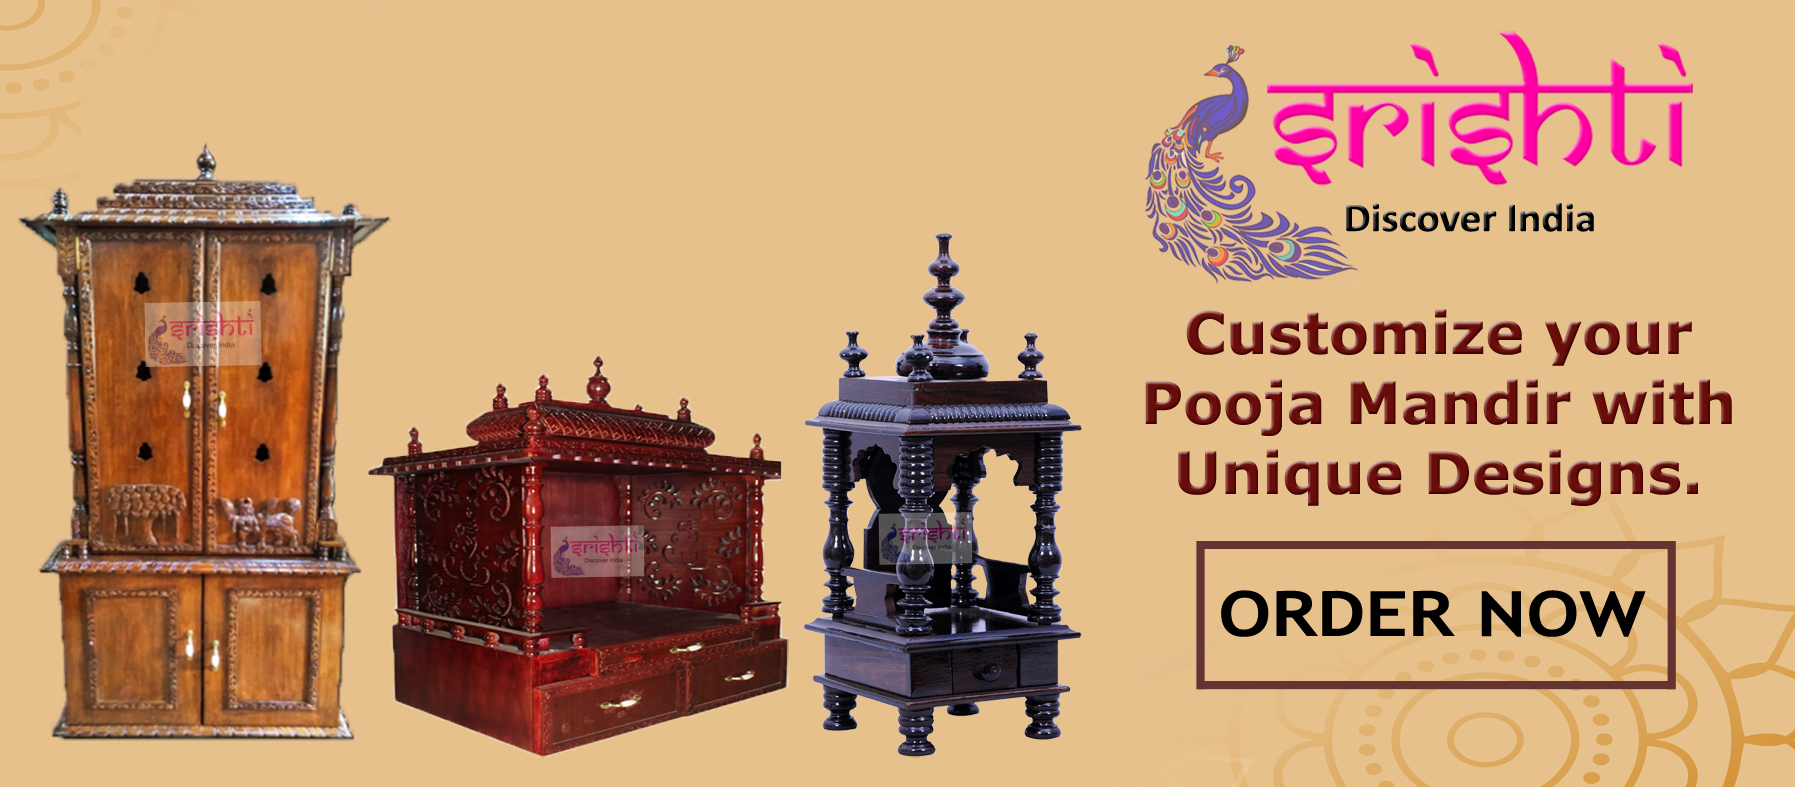 Indian Religious Pooja Items & Gifts in USA